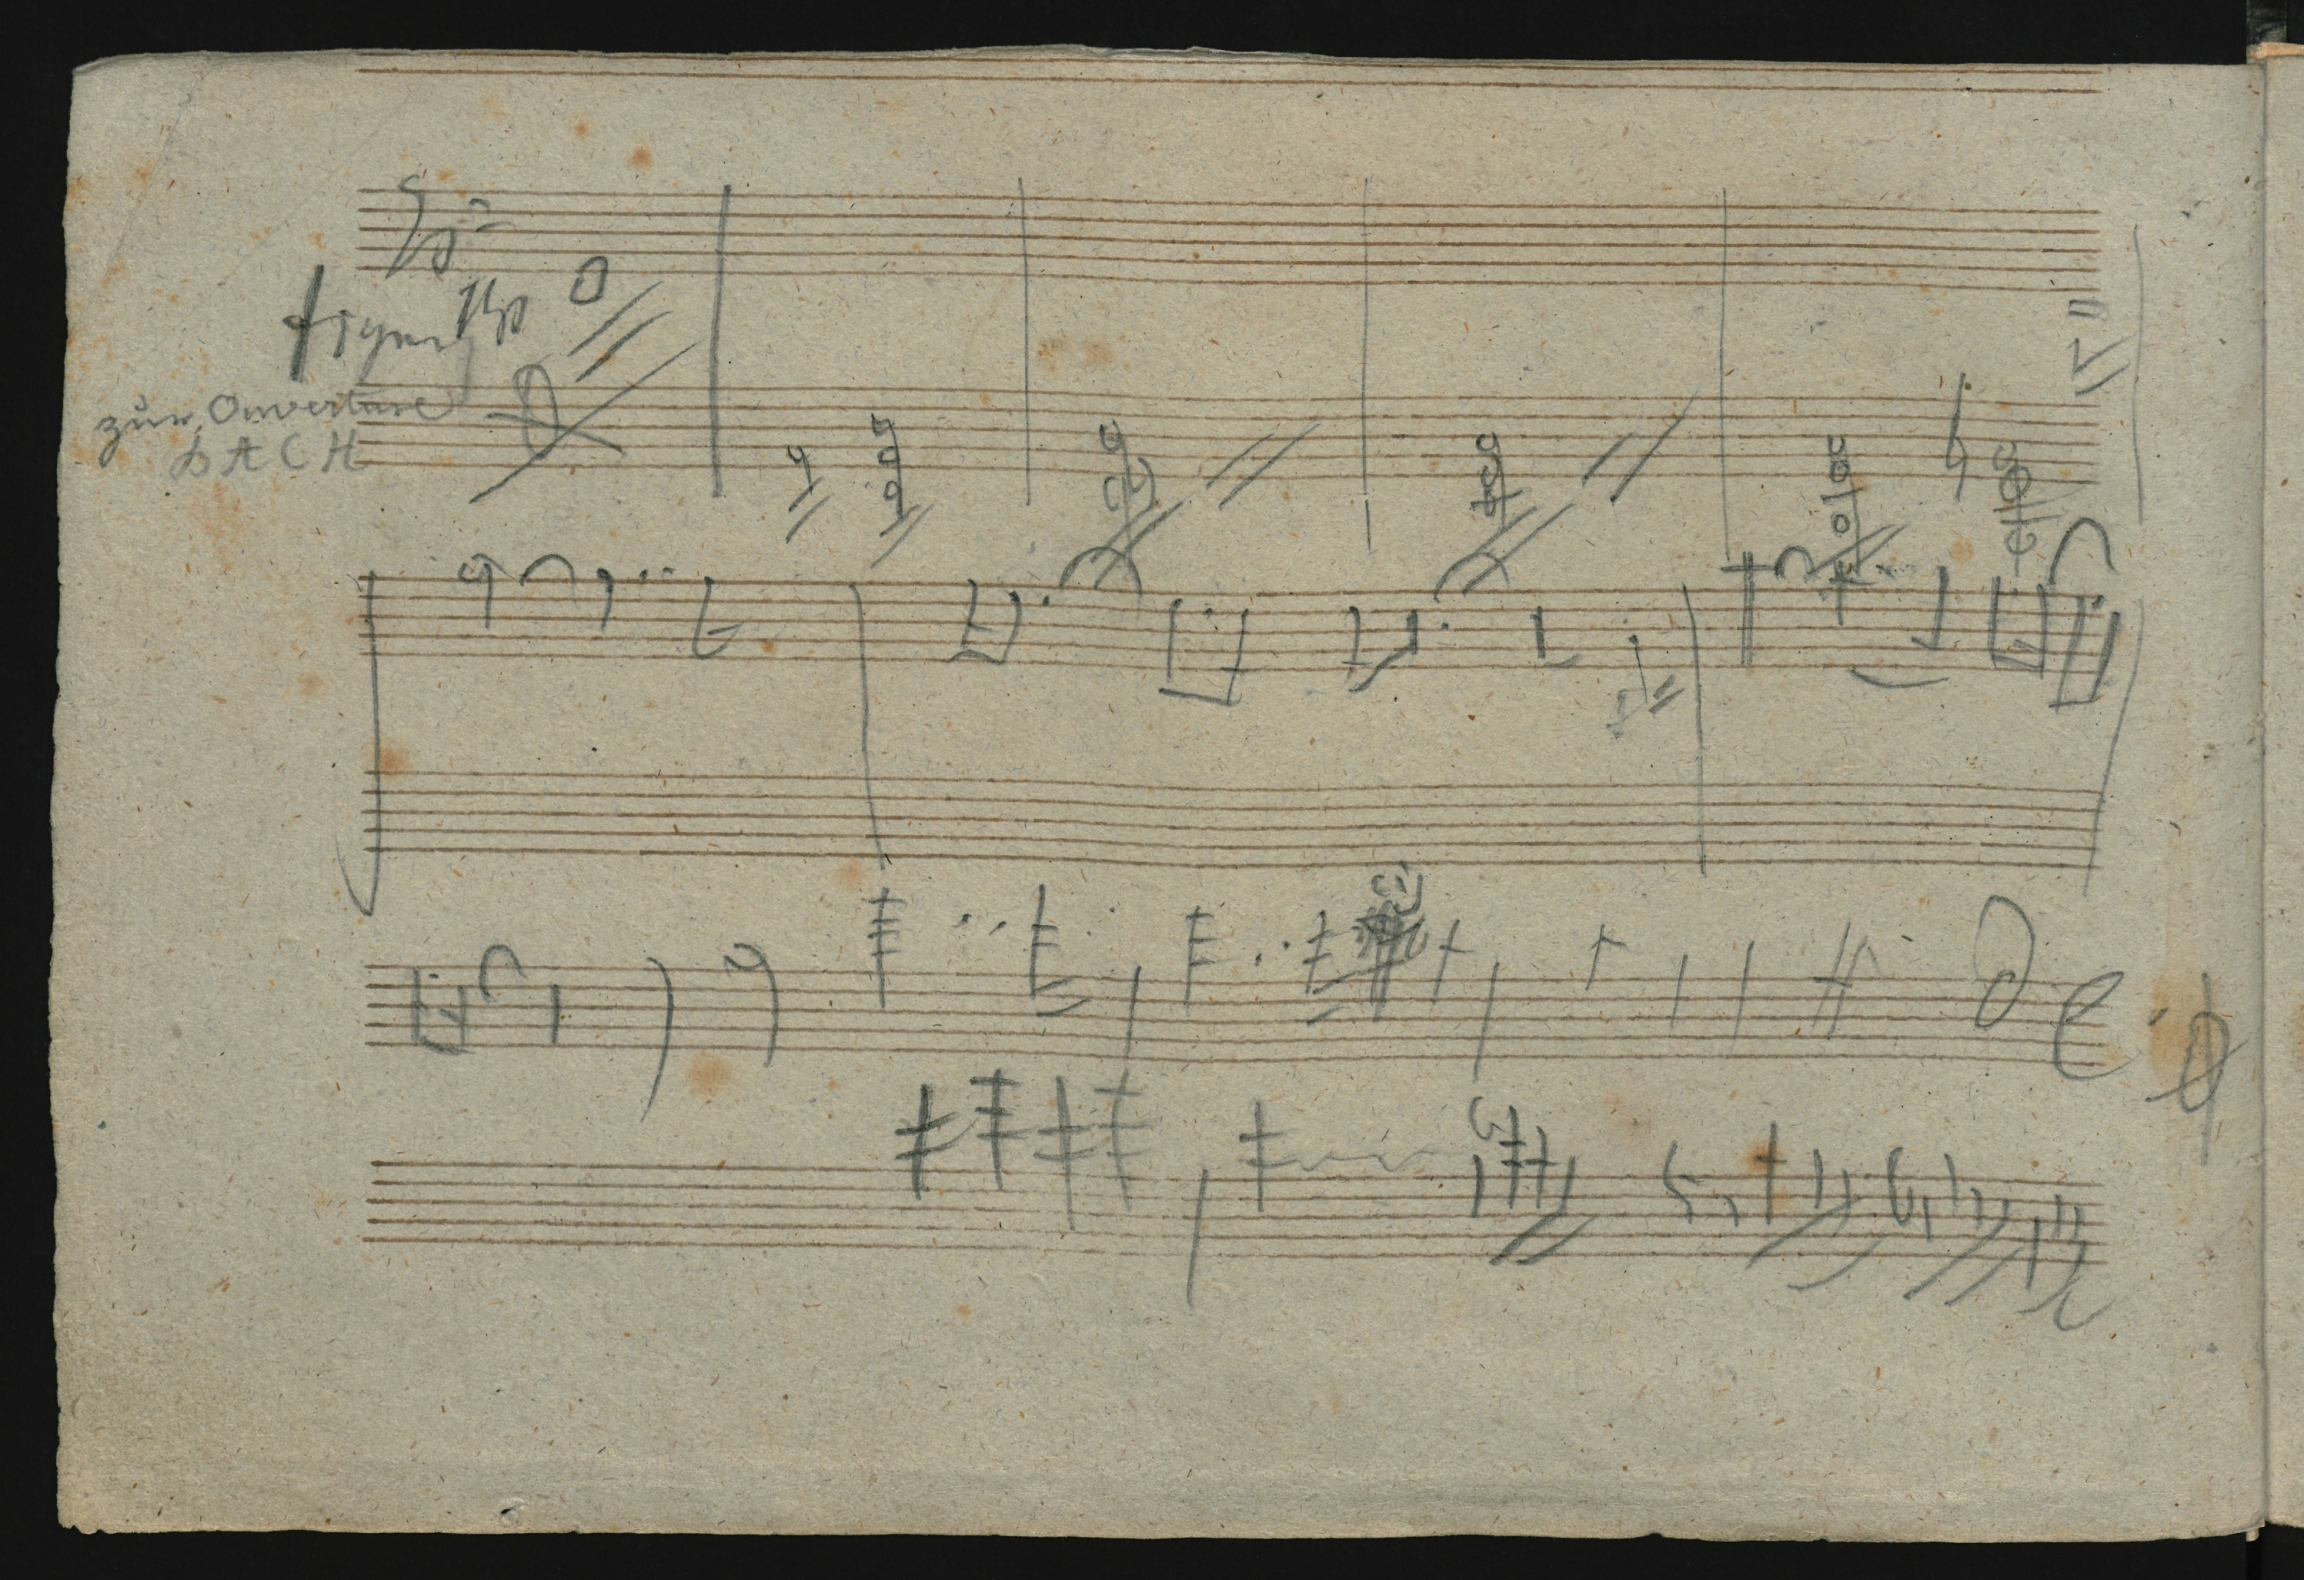 Manuscript score with musical notes jotted on it.